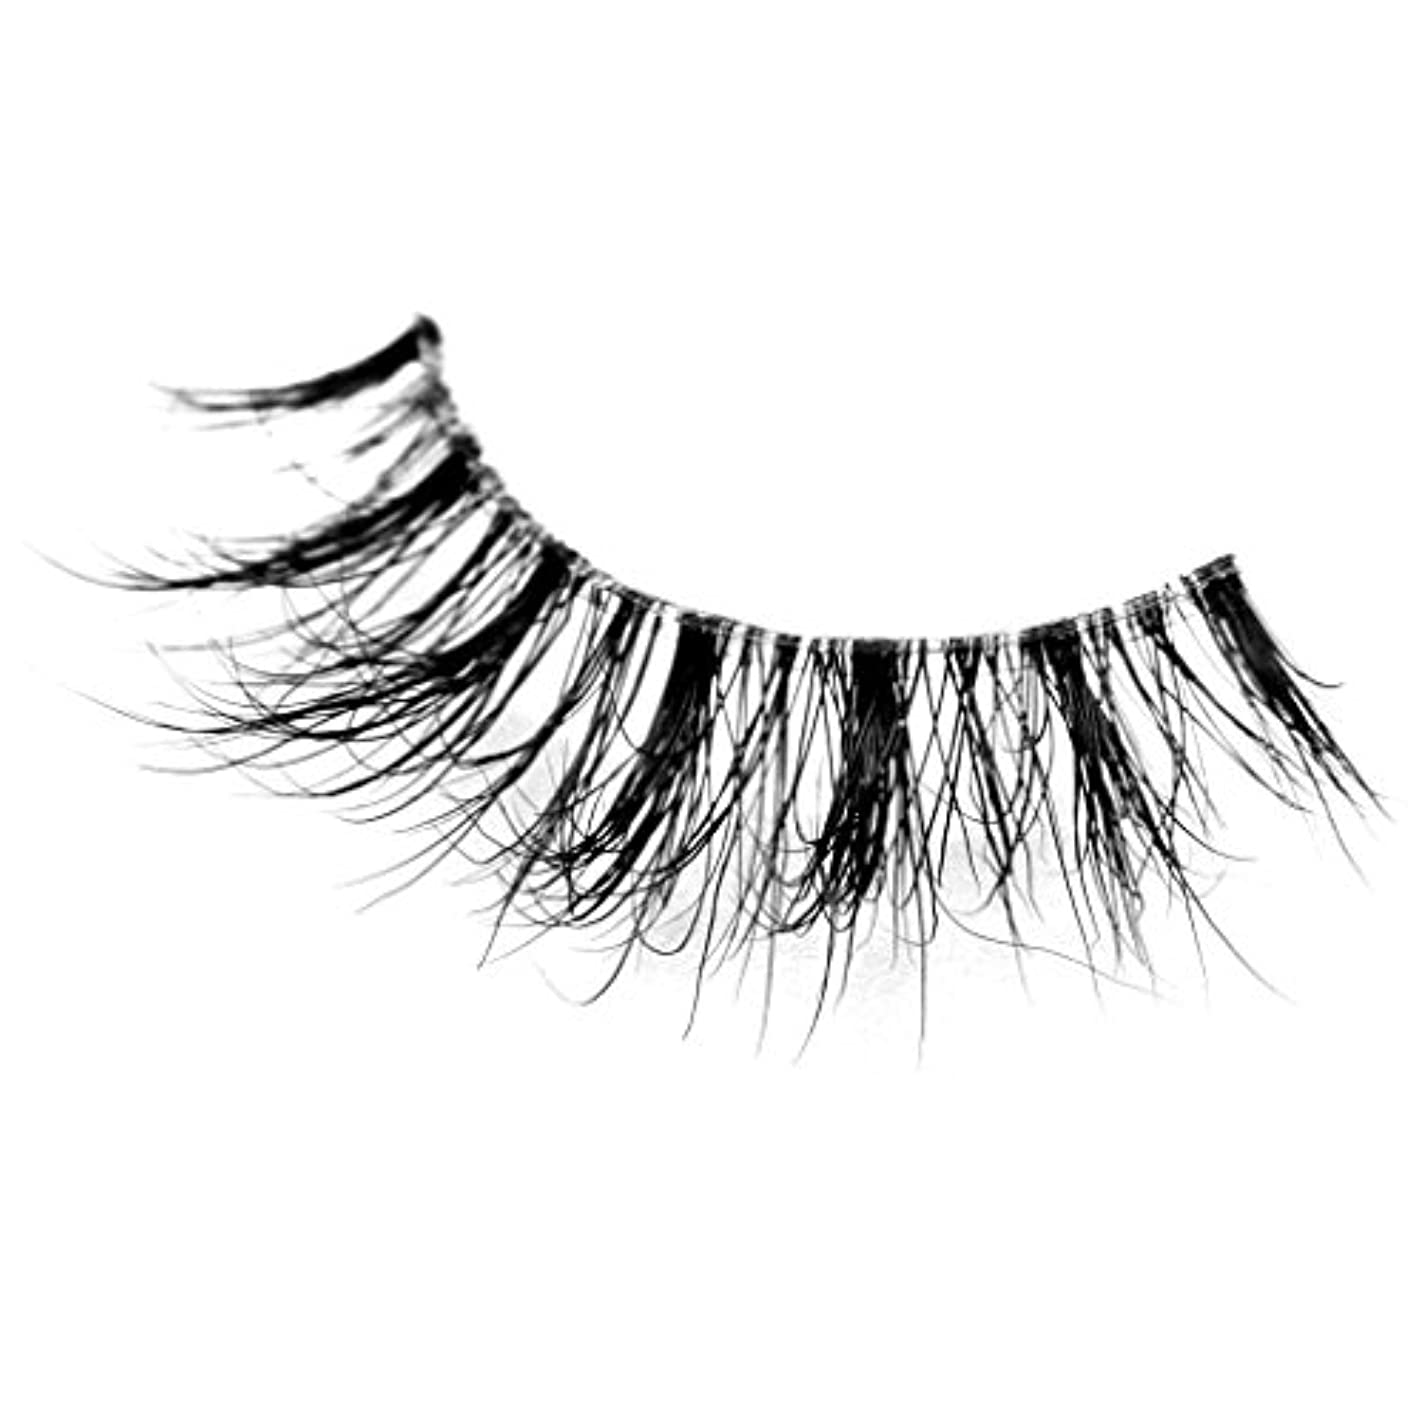 距離エージェント出費Musegetes Handmade 3D Mink False Eyelashes Natural for Makeup, Reusable with Clear Invisible Flexible Band 1 Pair...